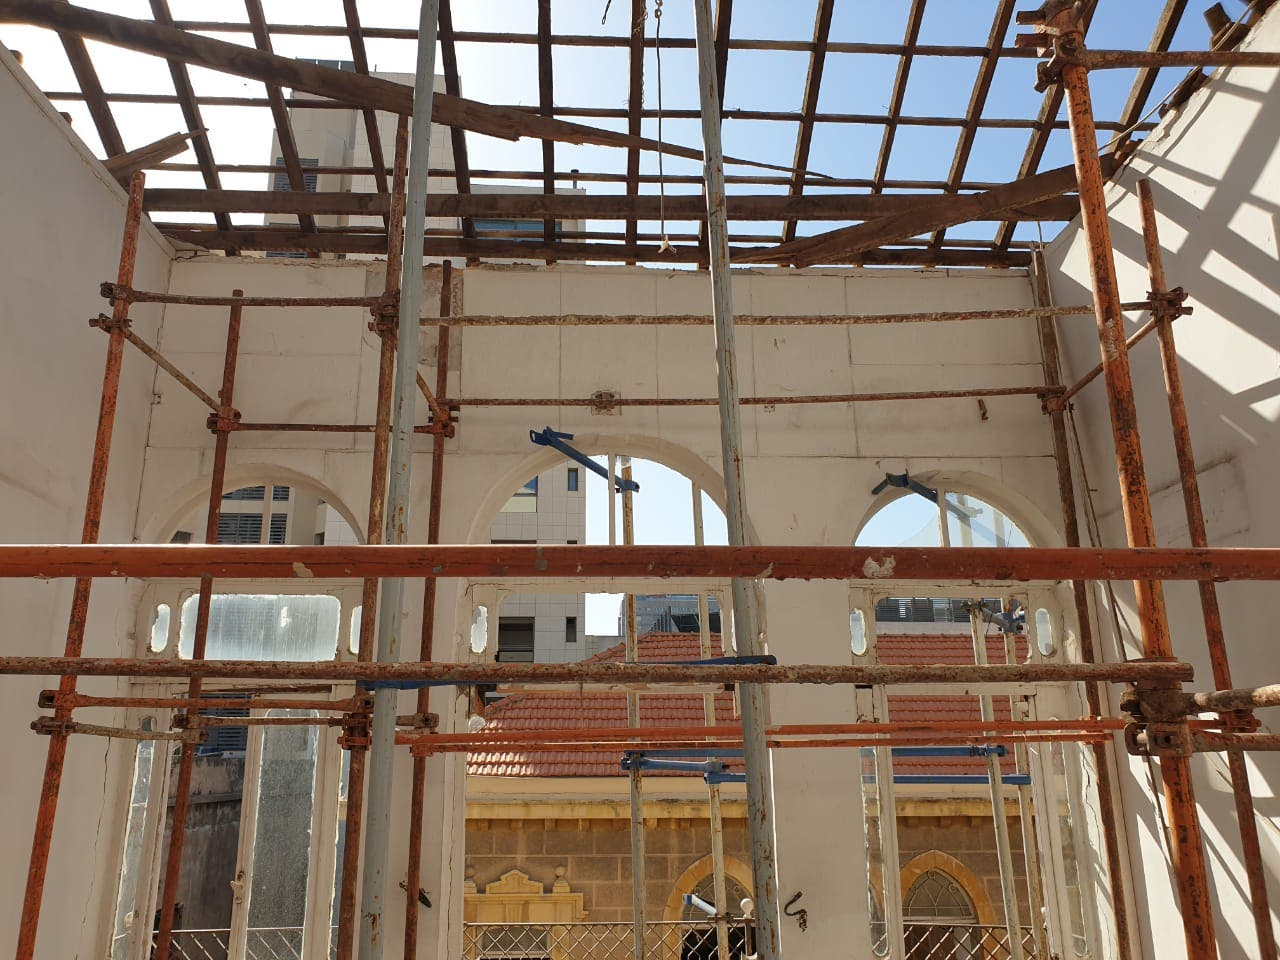 Scaffolding is shown in a Beirut heritage home that was destroyed in the Beirut Aug. 4 port explosion. (Supplied.)